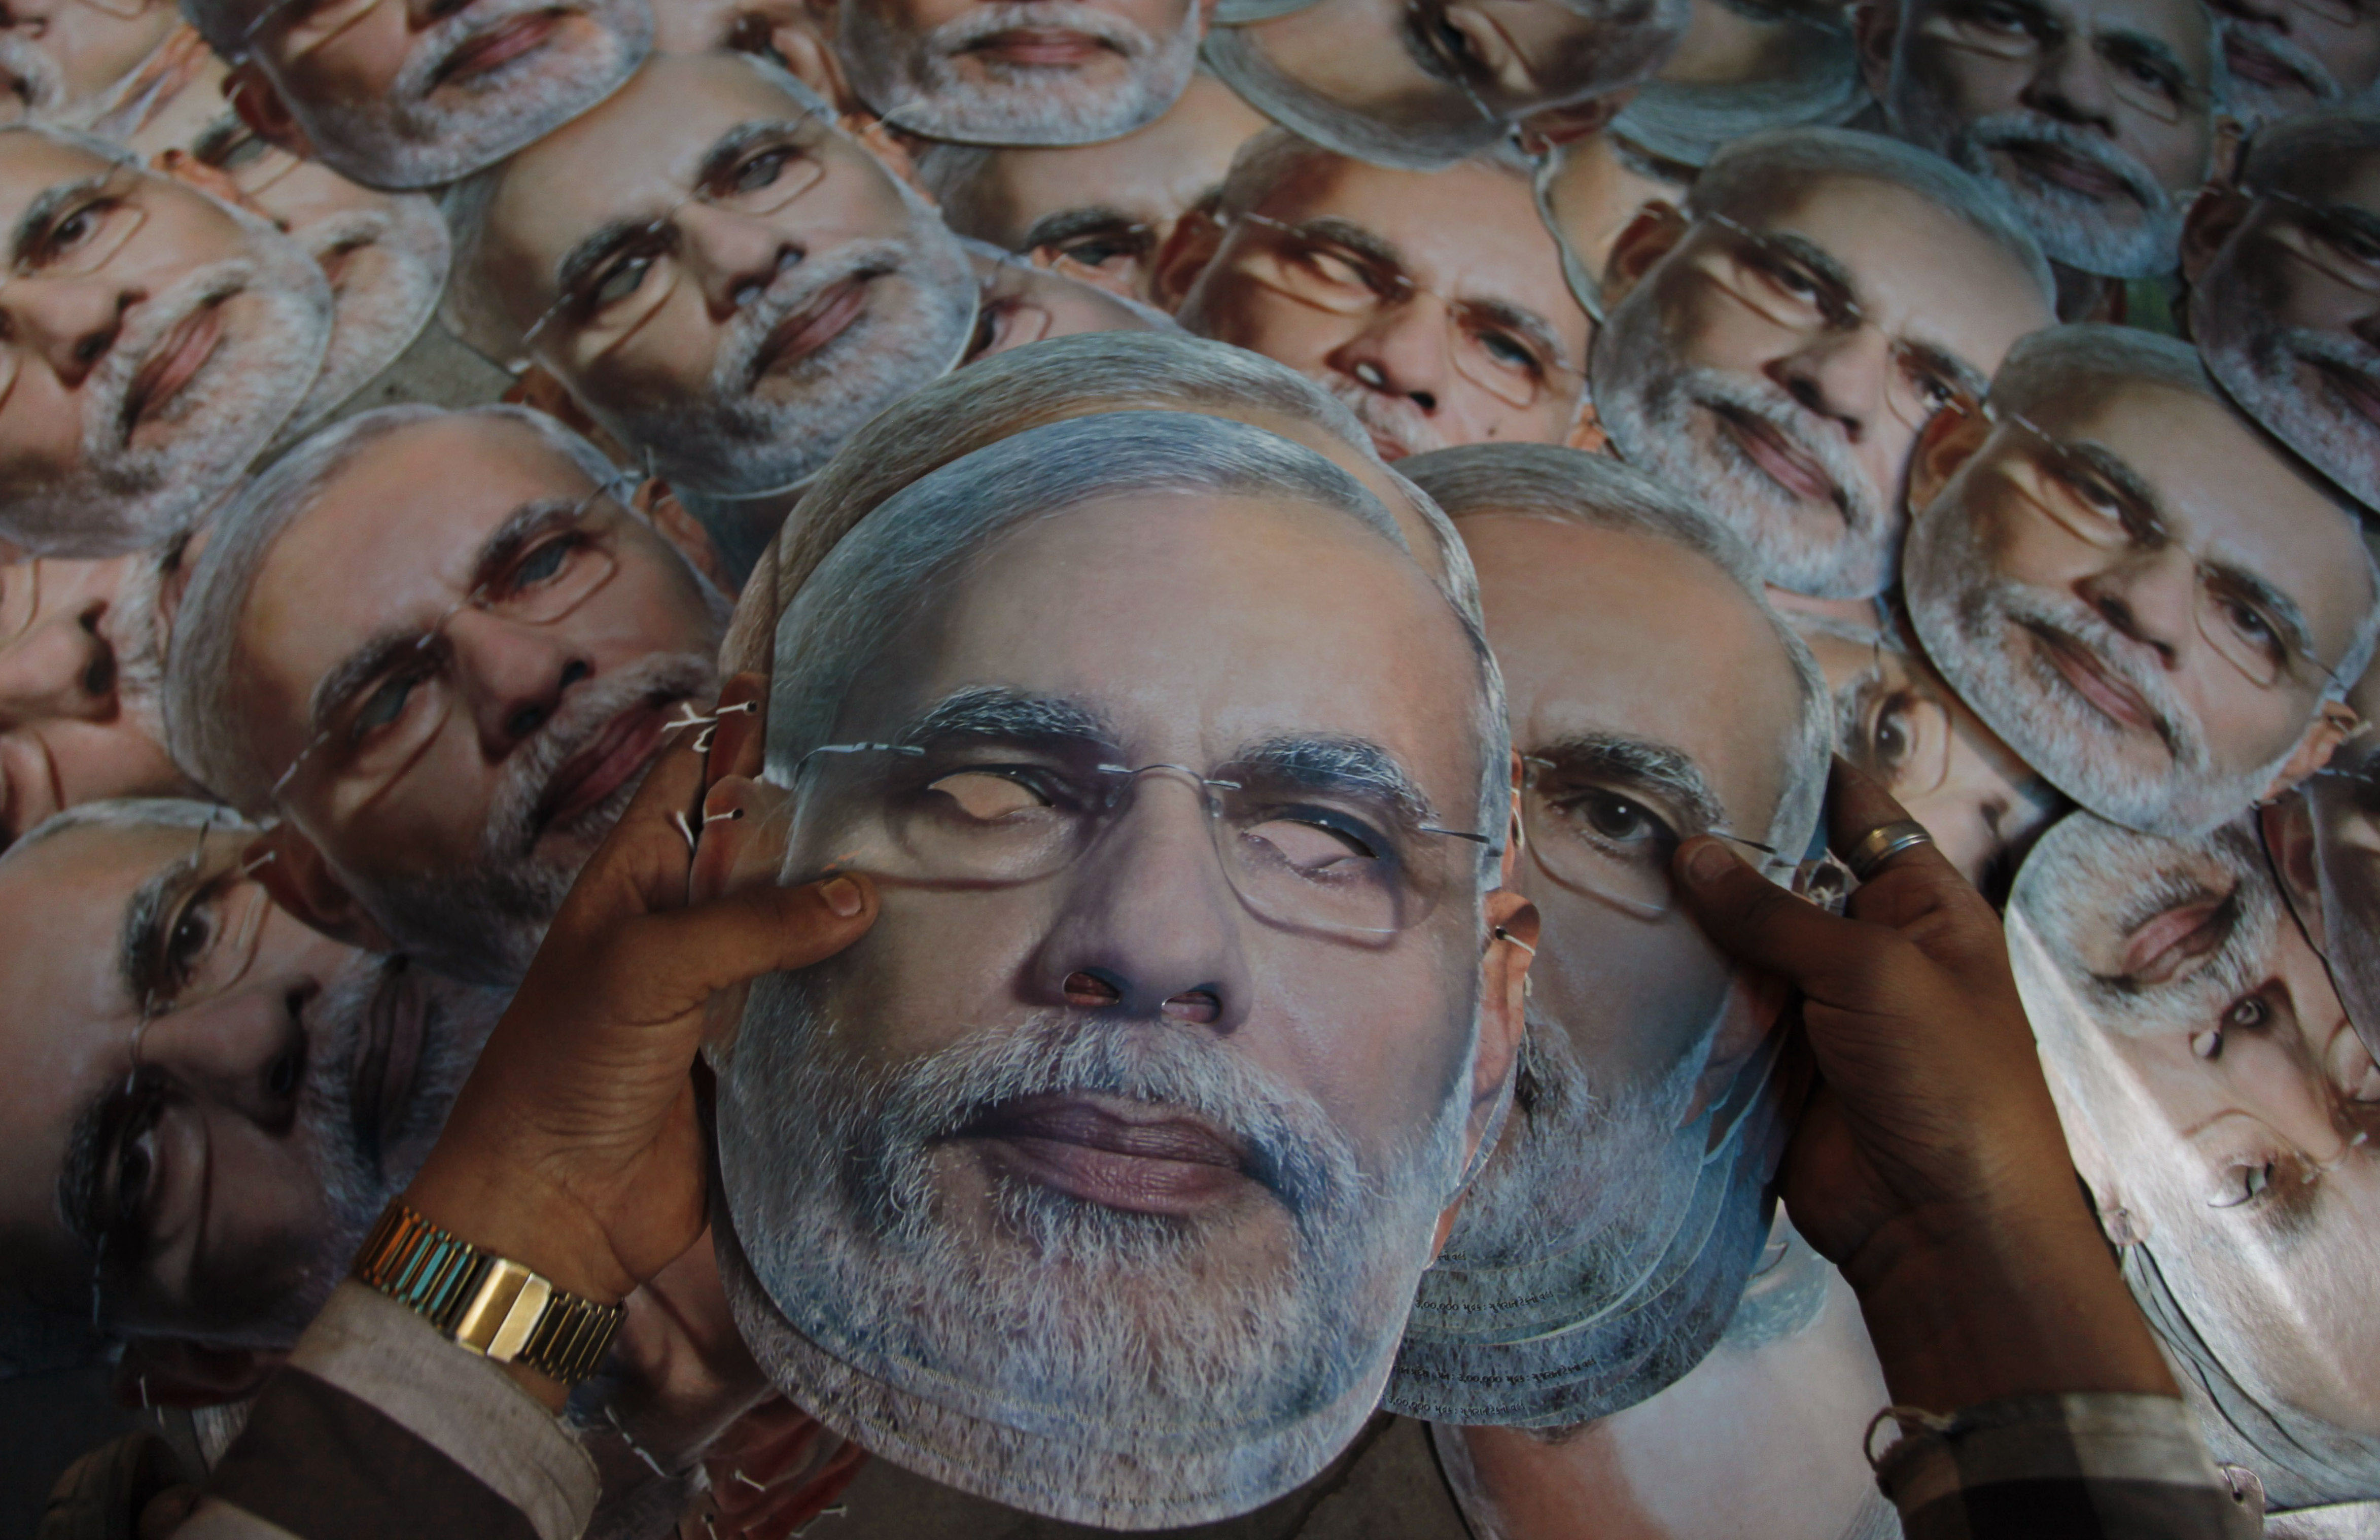 A print shop worker arranges masks depicting Narendra Modi, prime ministerial candidate for the main opposition Bharatiya Janata Party in Indian national elections, at a printing press in Ahmadabad, India, on April 12.   AP